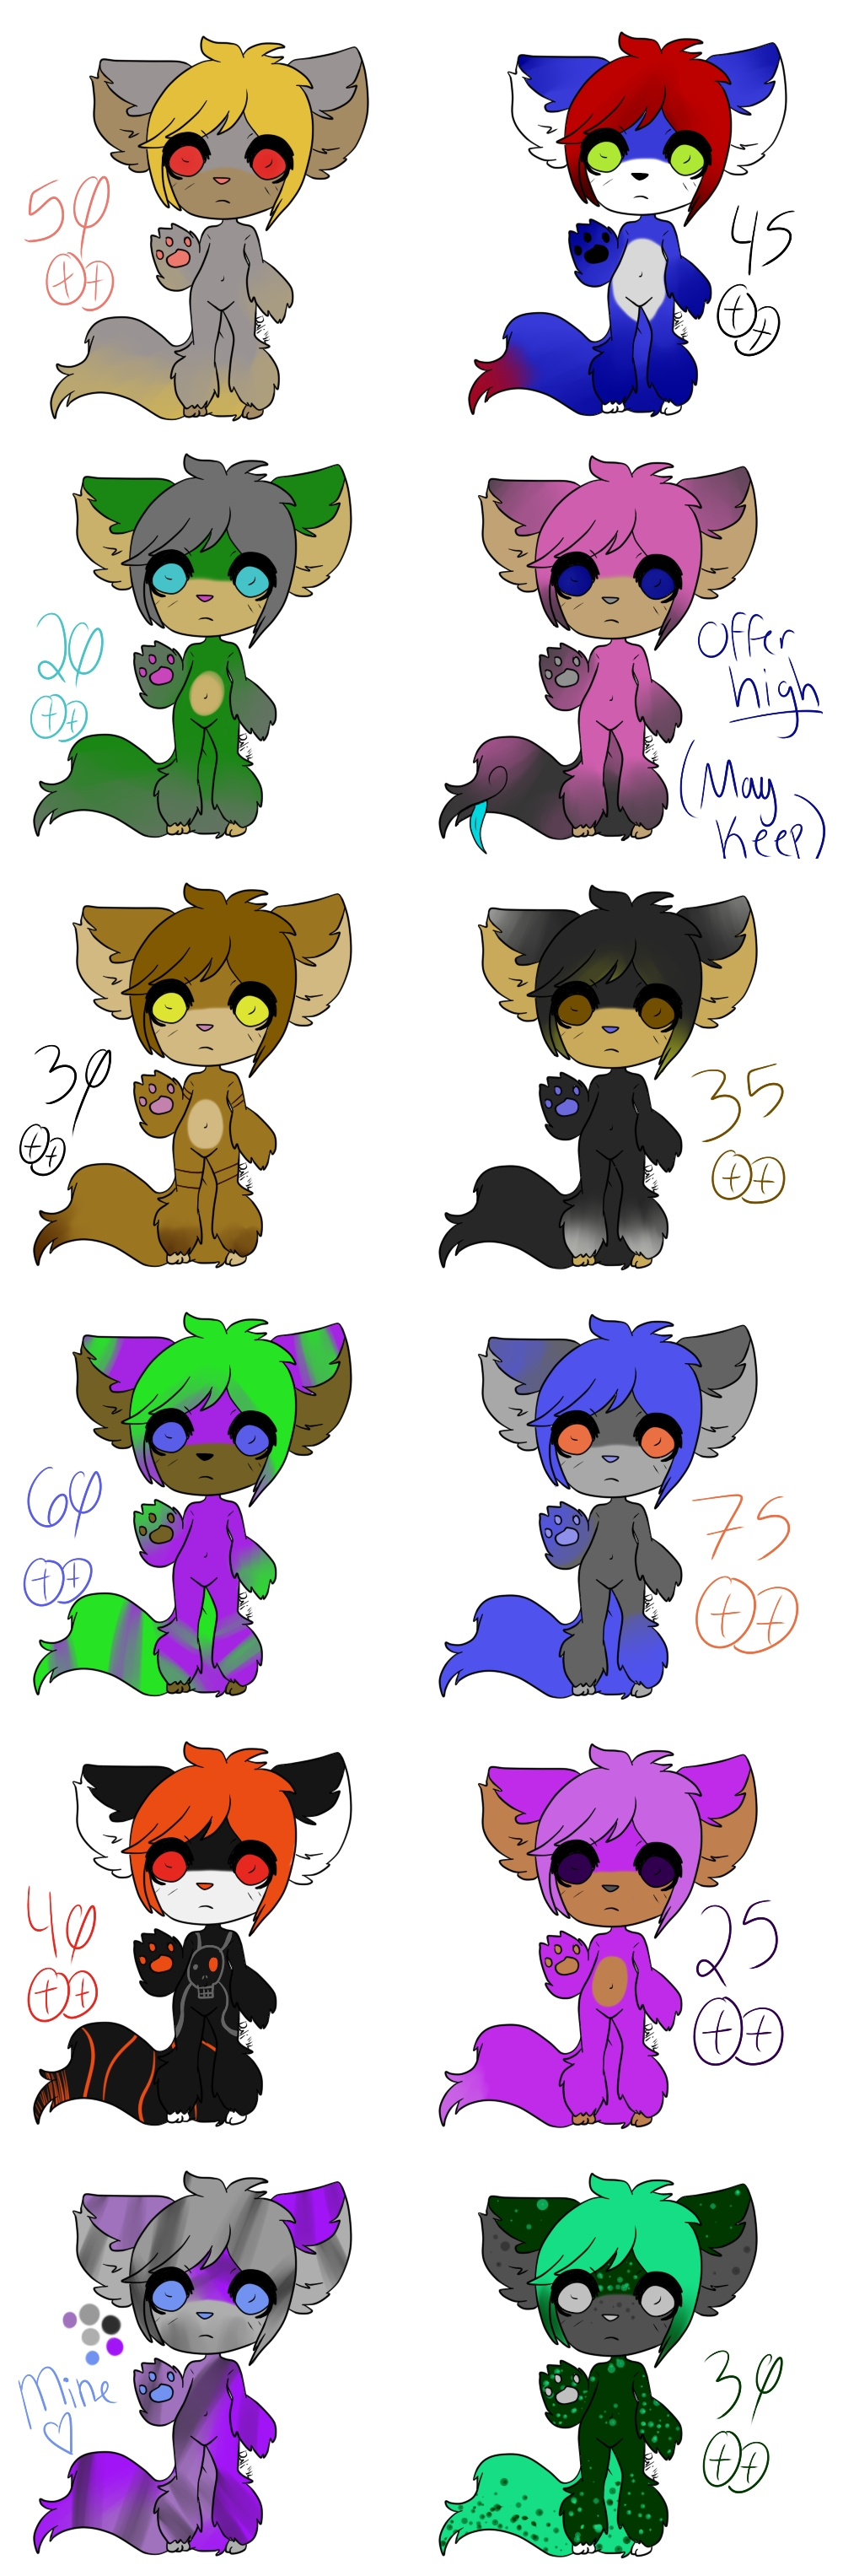 Adoptable Cluster! (PRICES REDUCEDDDD) by XxLuciferStarxX